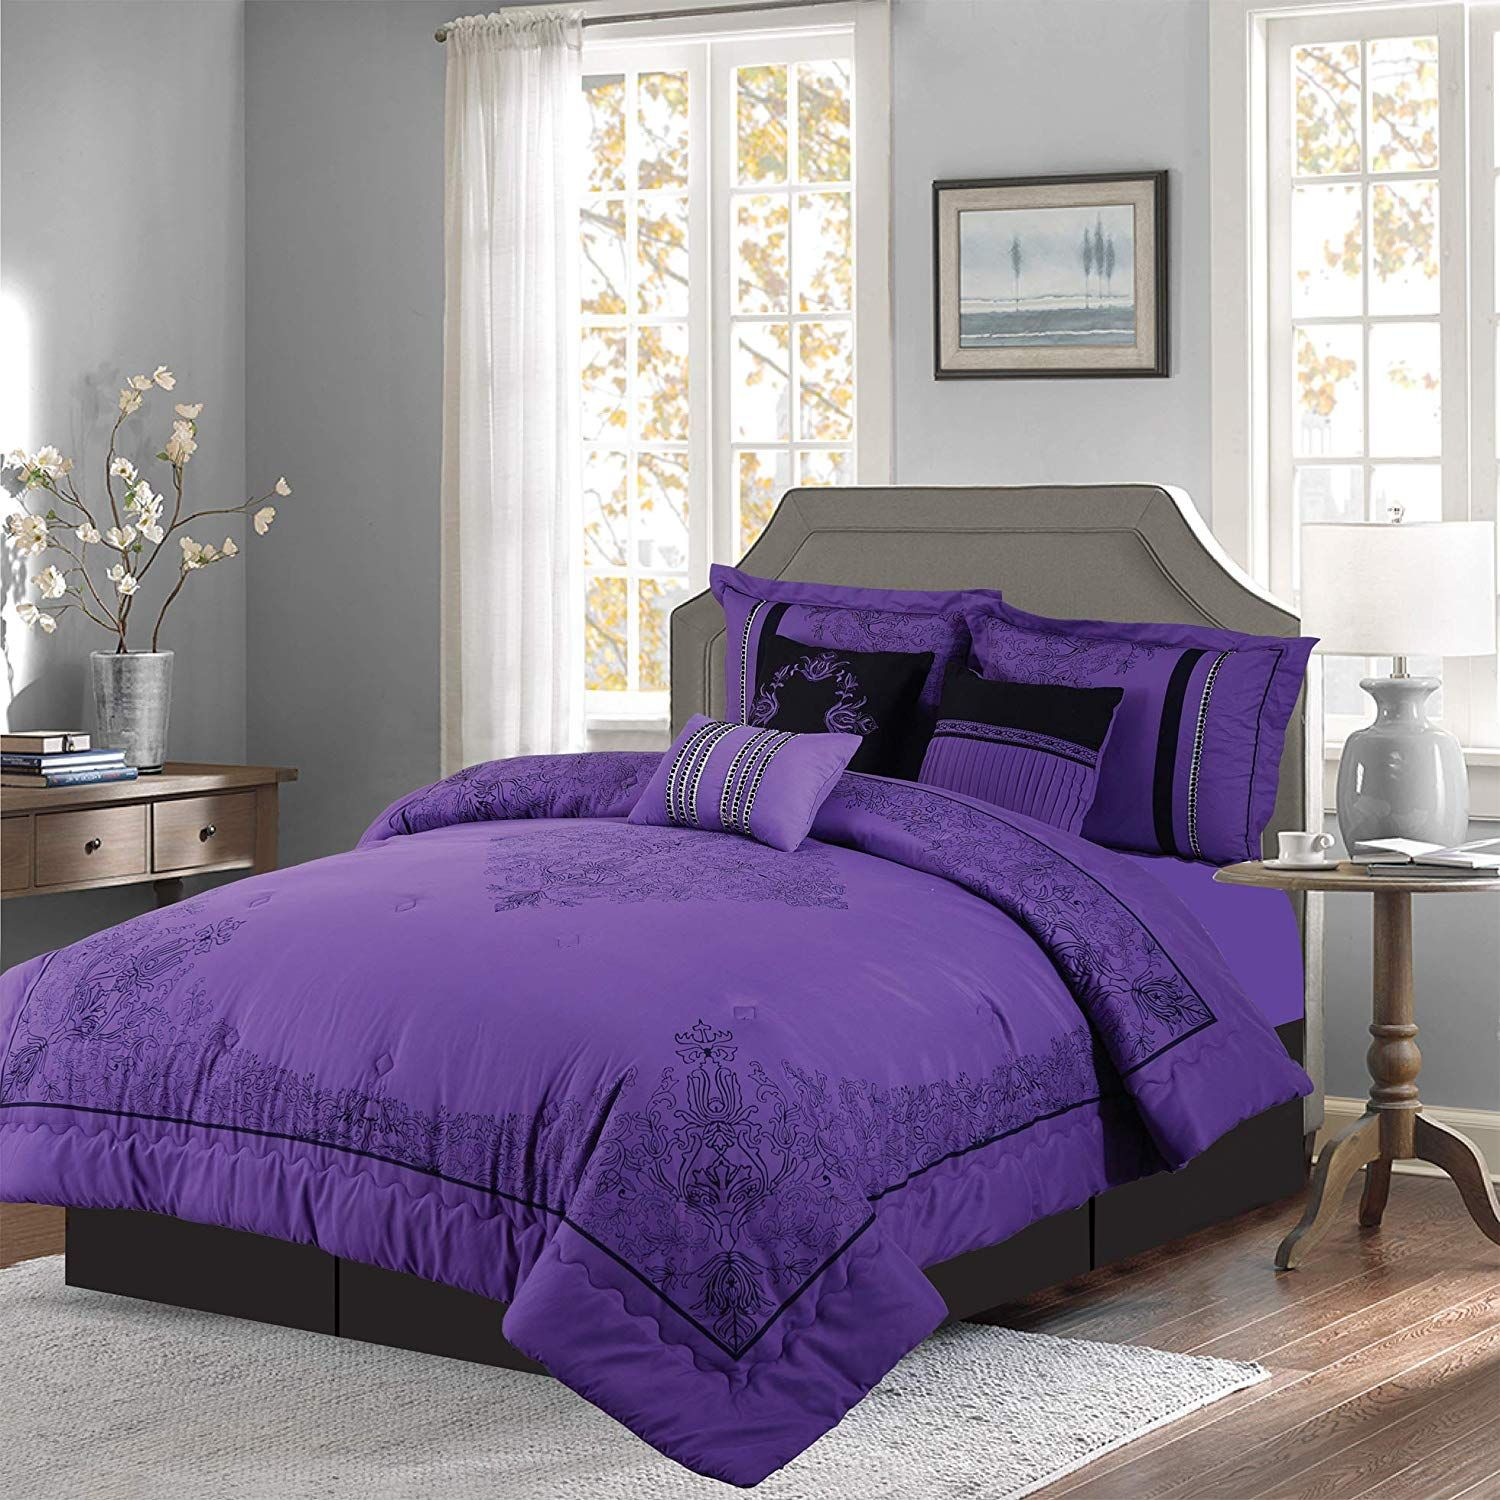 Empire Home 7 Piece Nadia Oversized Elegant Comforter Set